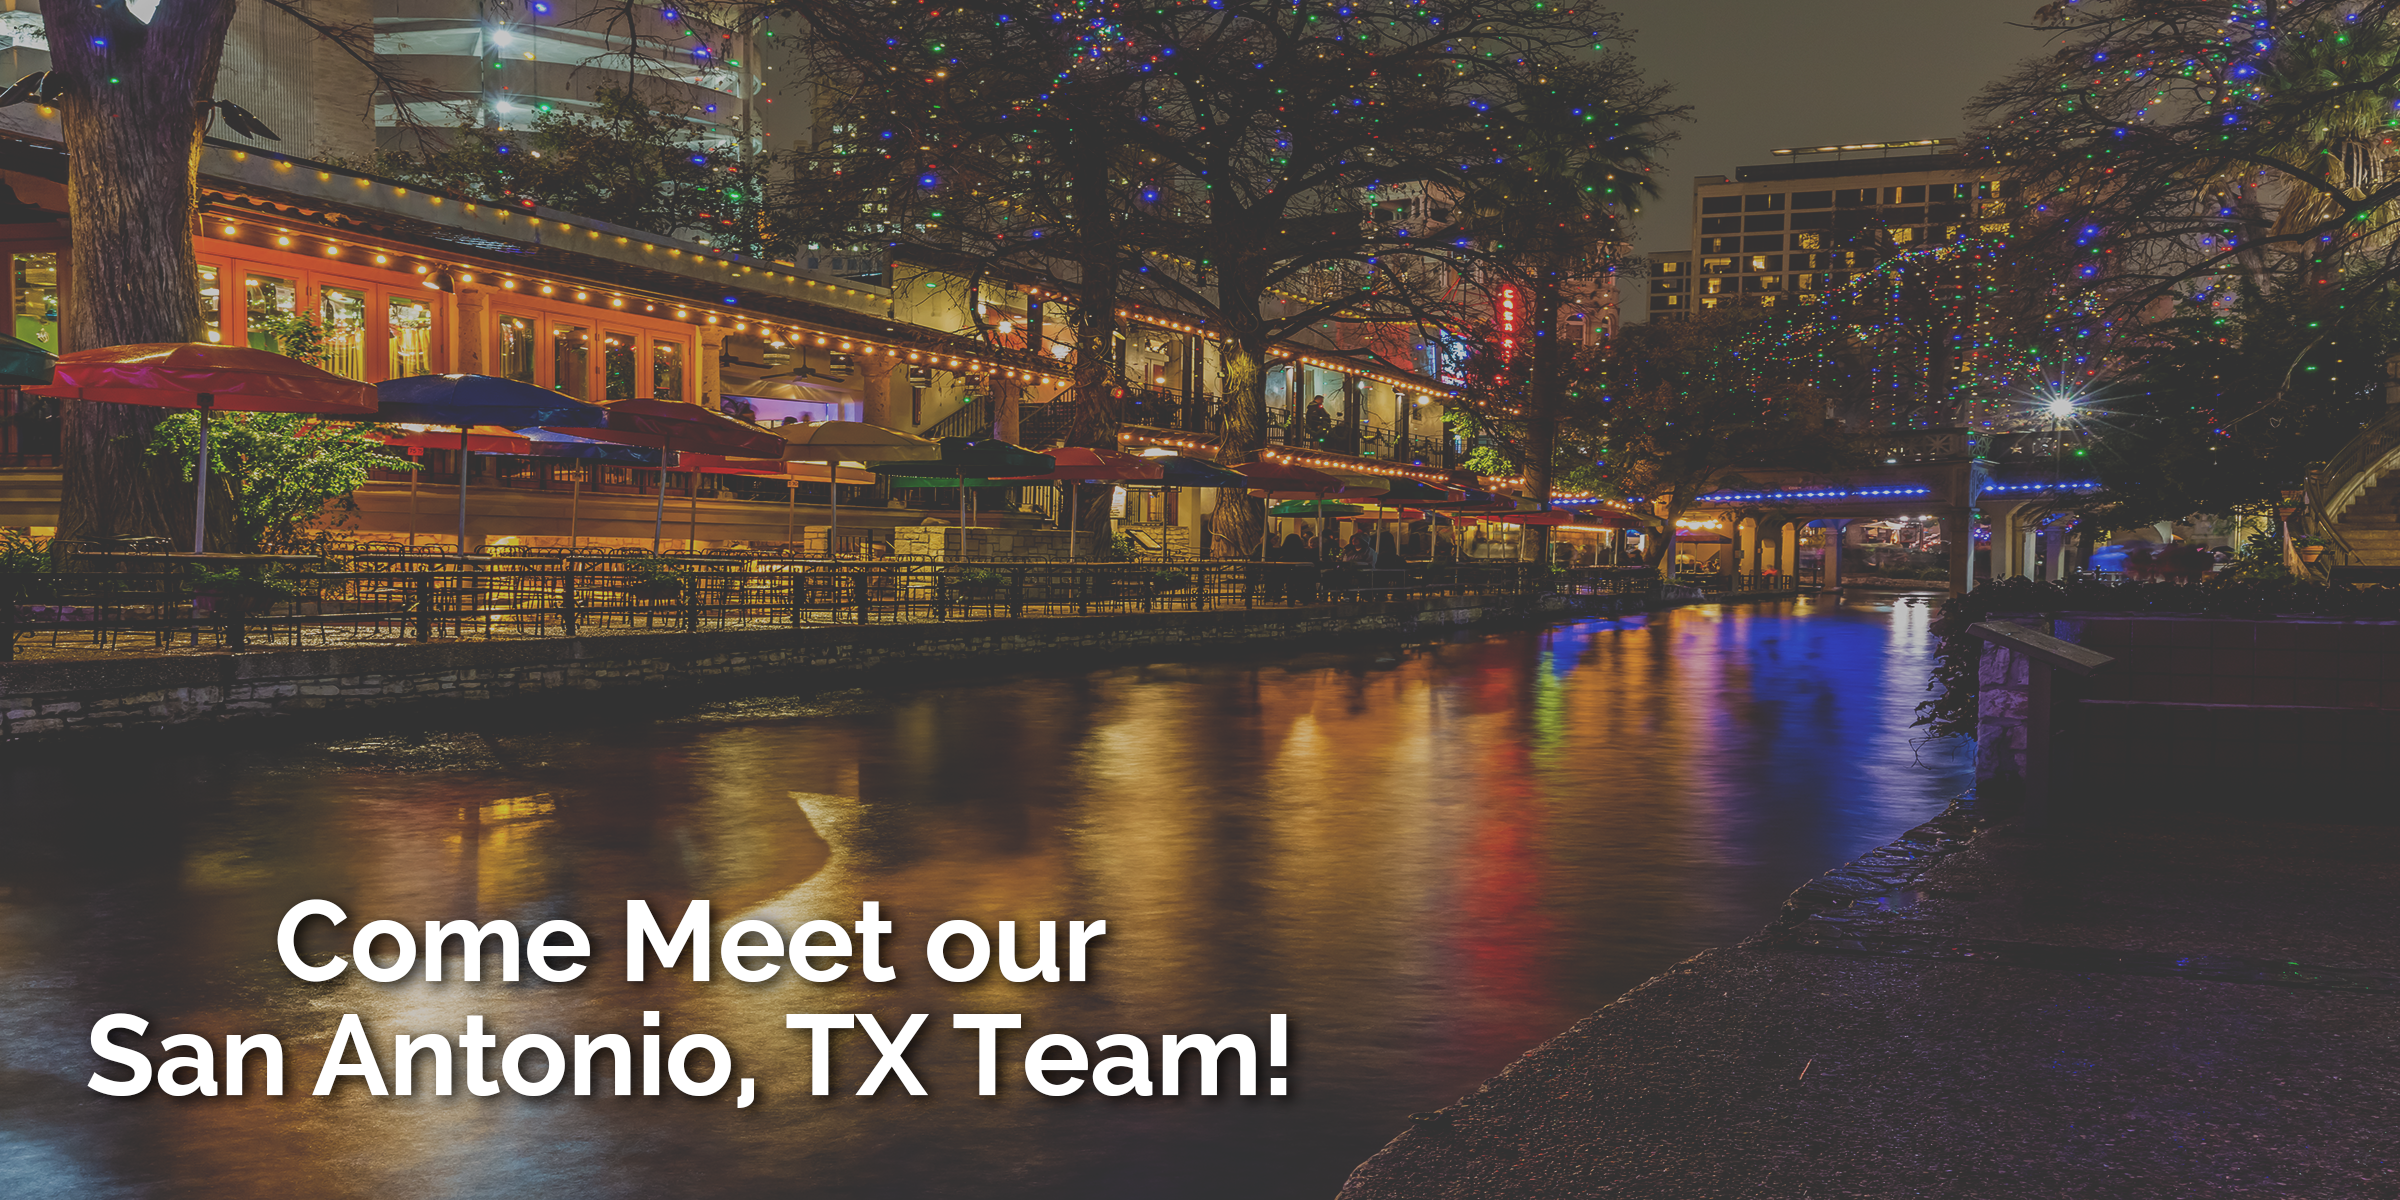 Meet our San Antonio, TX Team!